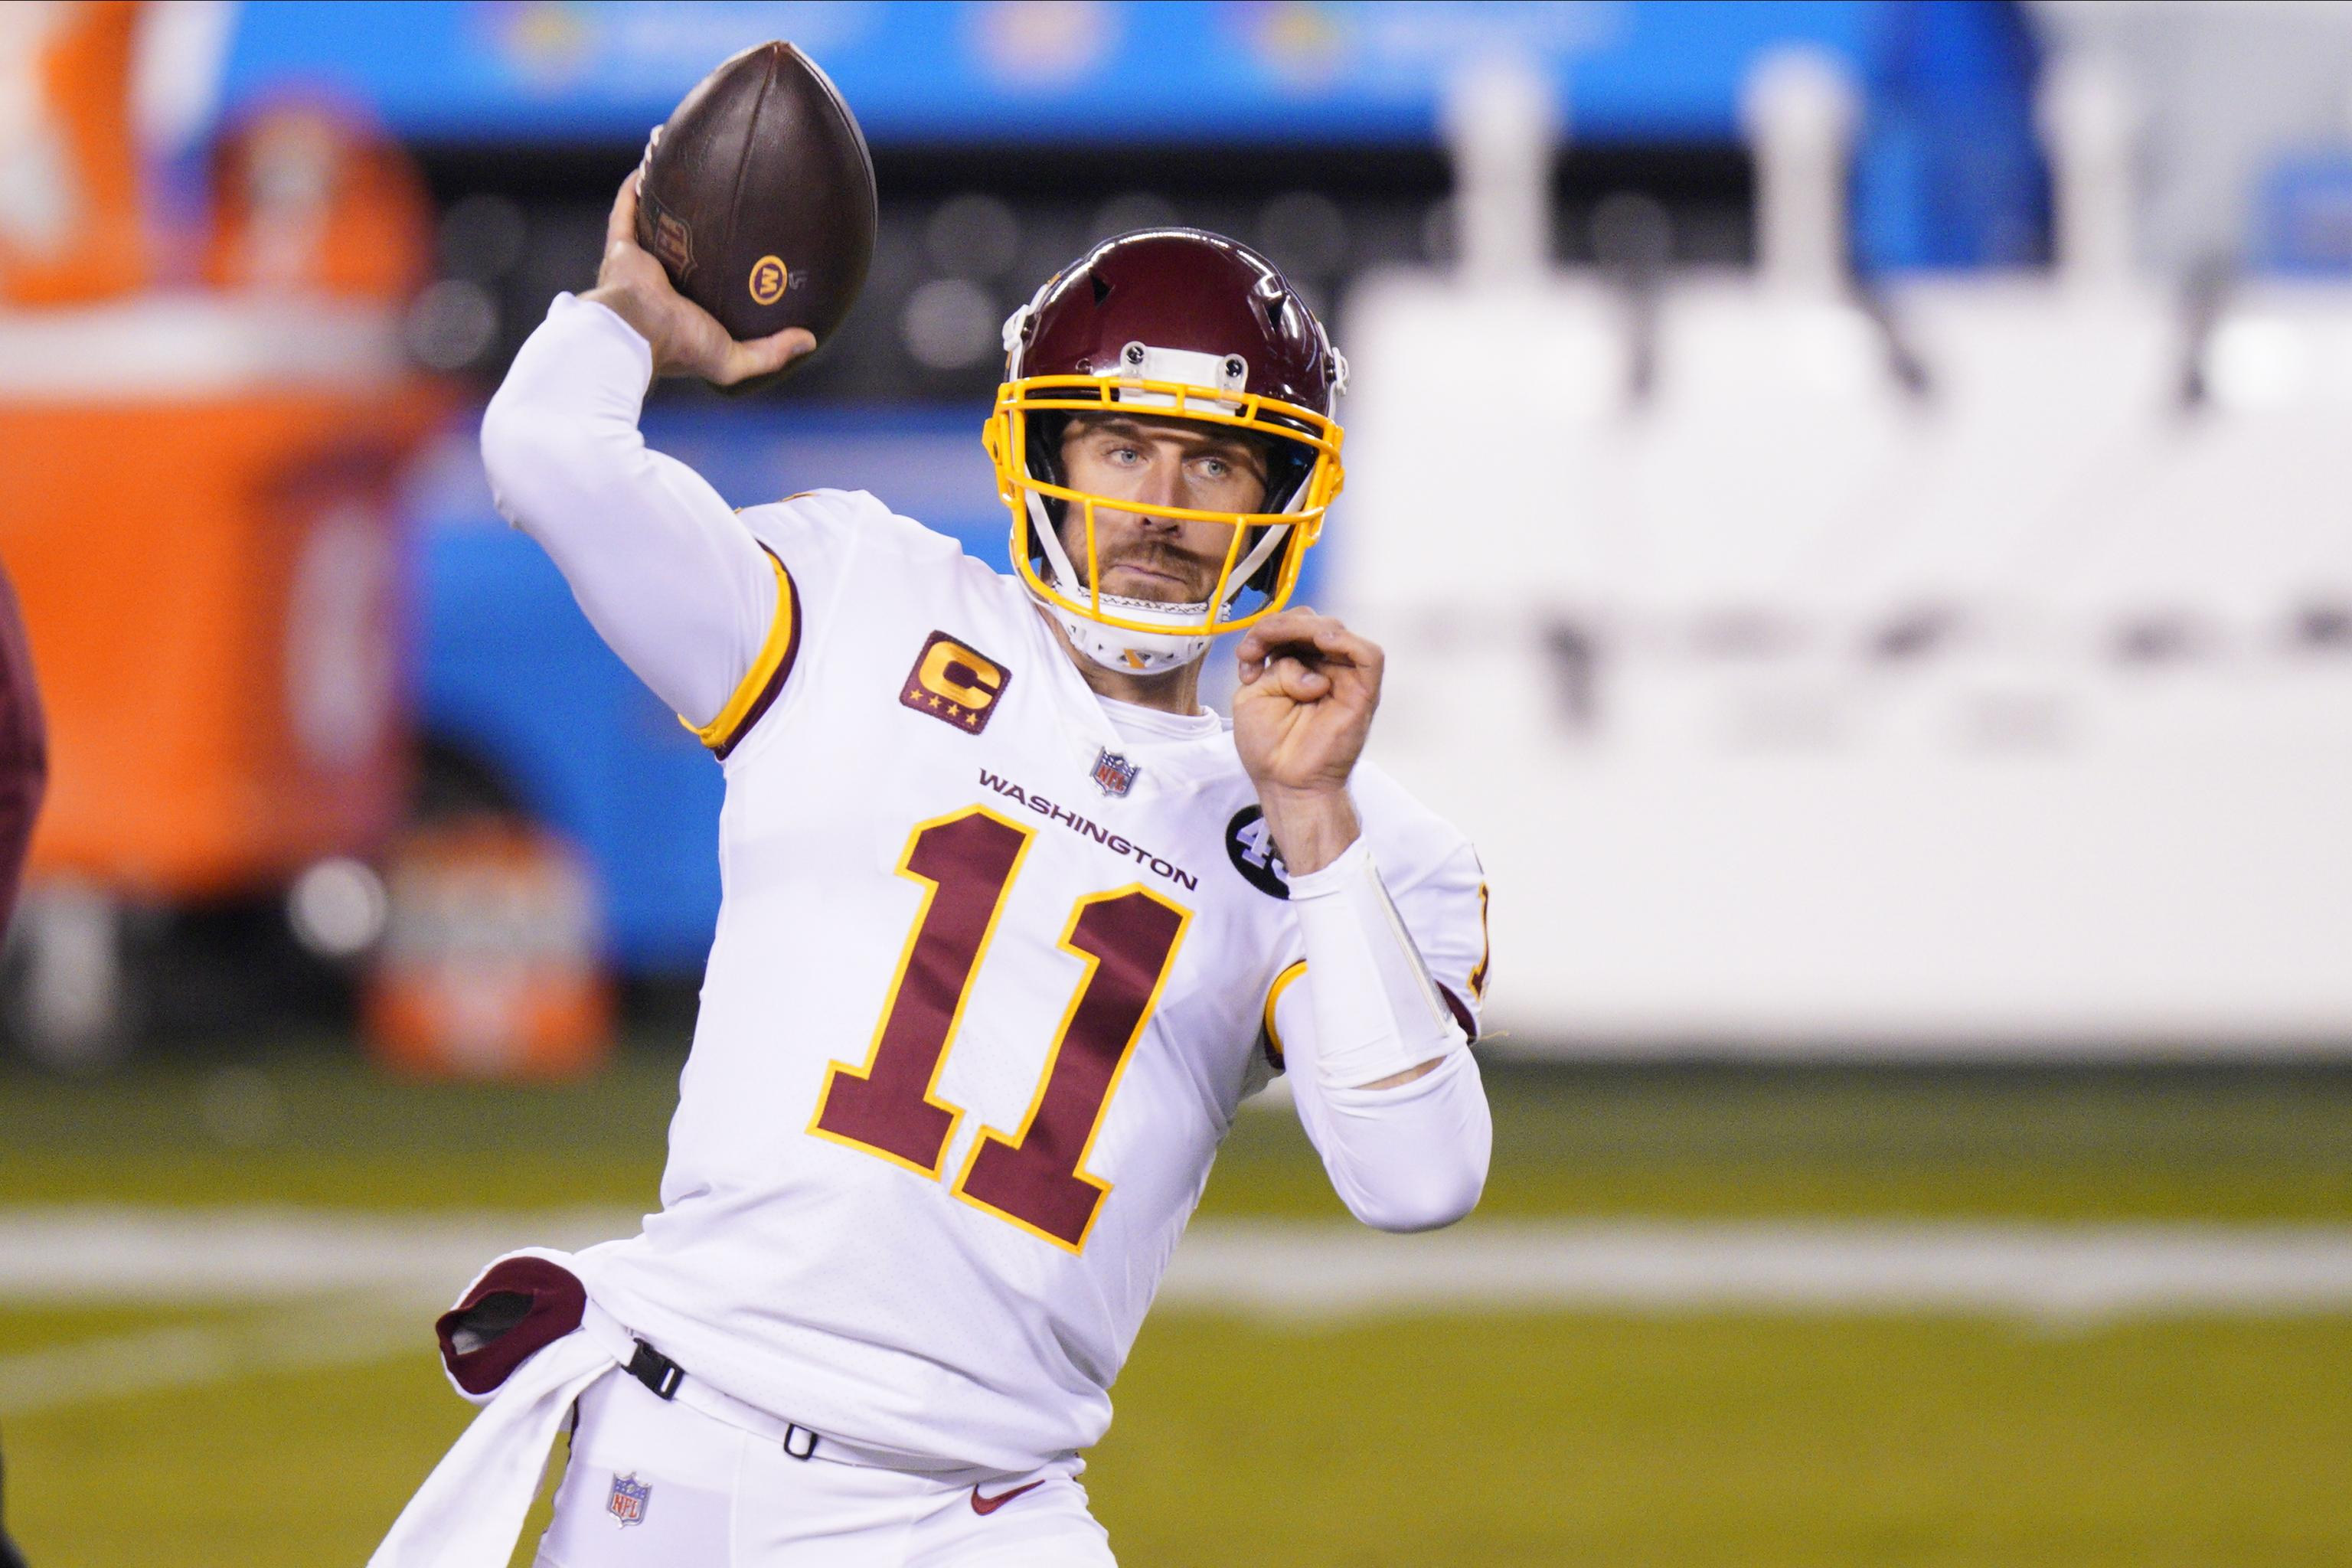 Nfl Rumors Wft Qb Alex Smith Does Want To Play Somewhere In 2021 Bleacher Report Latest News Videos And Highlights